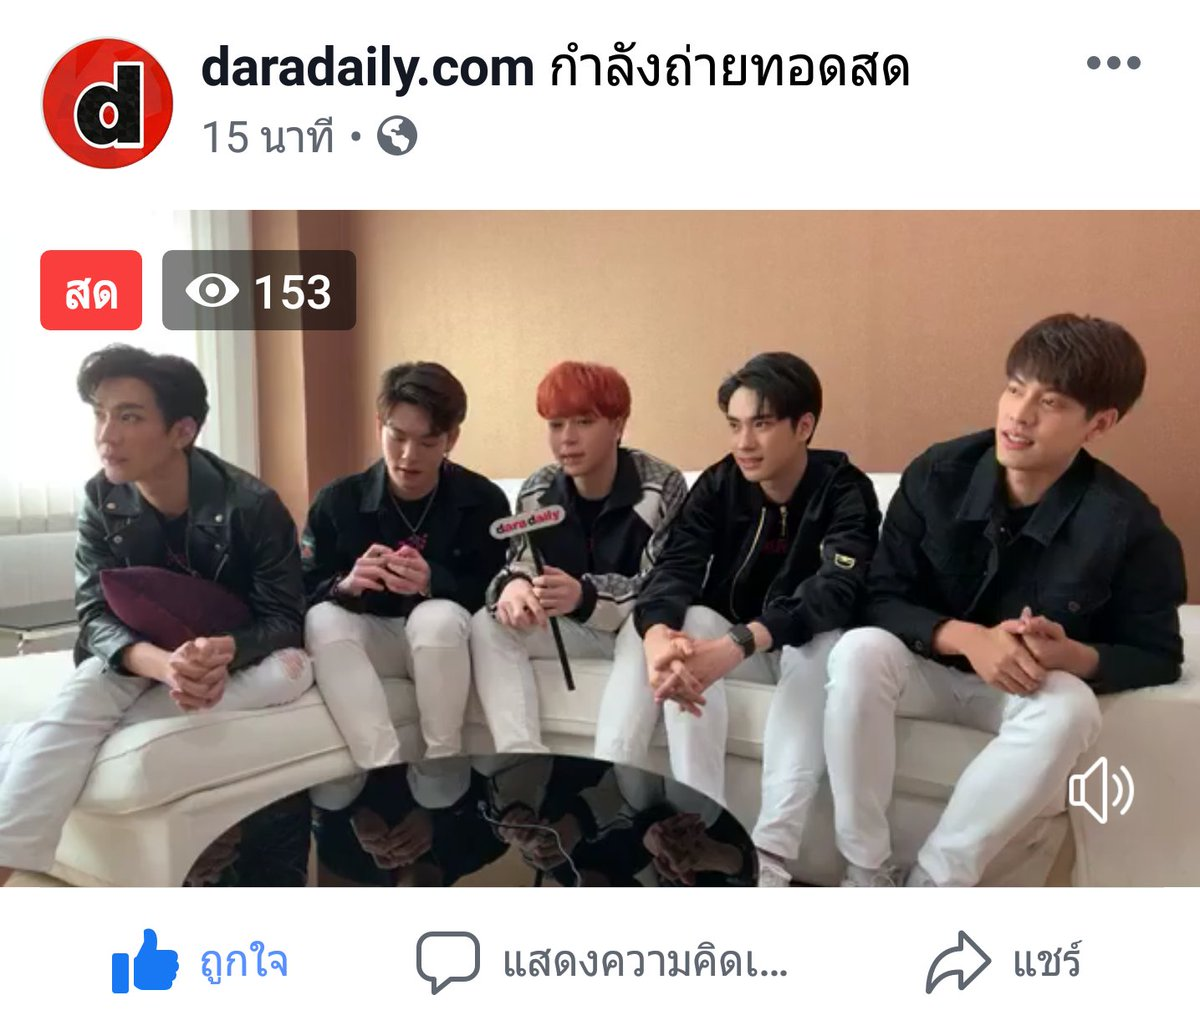 Please press like on Facebook  daradaily  https://www. facebook.com/welovedaradail y/videos/482076702551776/   …   Mono Fresh  https://www. facebook.com/MonoFresh91.5/ videos/470258013742506/   …   MThai  https://www. facebook.com/musicmthai/vid eos/2756454557702584/   …   Sanook  https://www. facebook.com/SanookNews/vid eos/2377079585913513/   …   #SB5_SuperboyRoadshowDay2 #บาสเด็กอ้วนที่แท้จริง #ขุณขิมมอญ #พี่เตอร์สินกำ #อะไรอะไรก็ตี๋ #เต้ติสชีวิตโลเทค<br>http://pic.twitter.com/ThXEUyxYEO